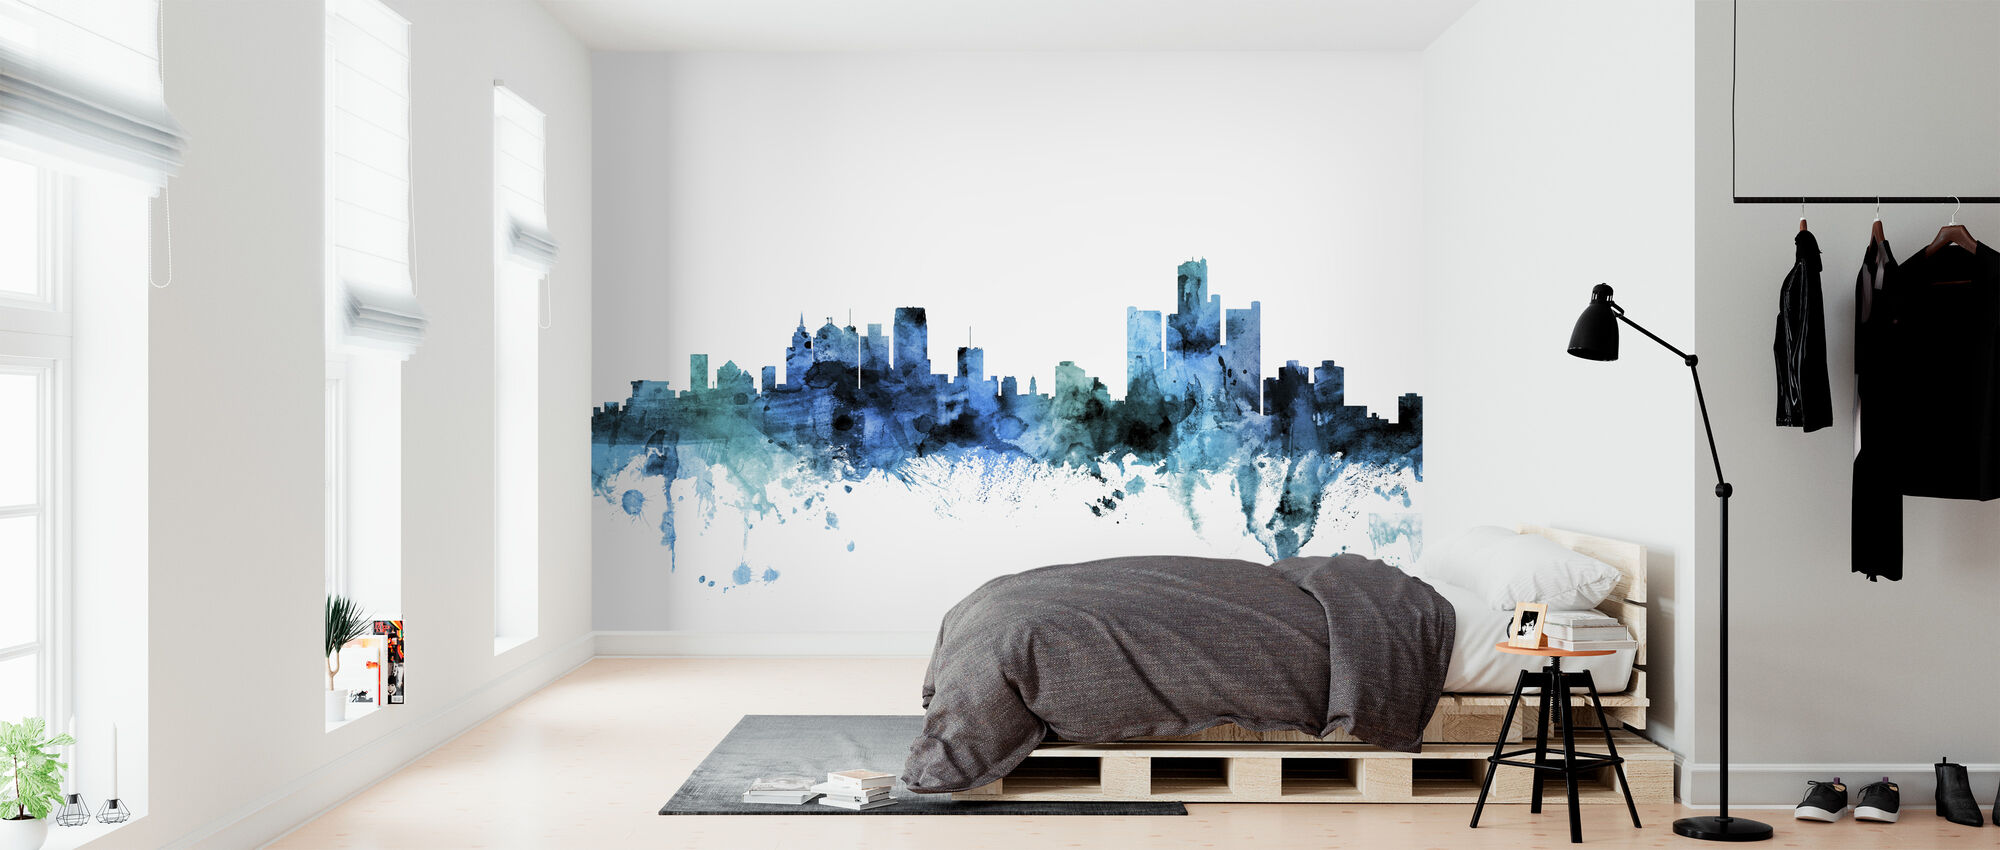 Detroit Michigan Skyline - Wallpaper - Bedroom